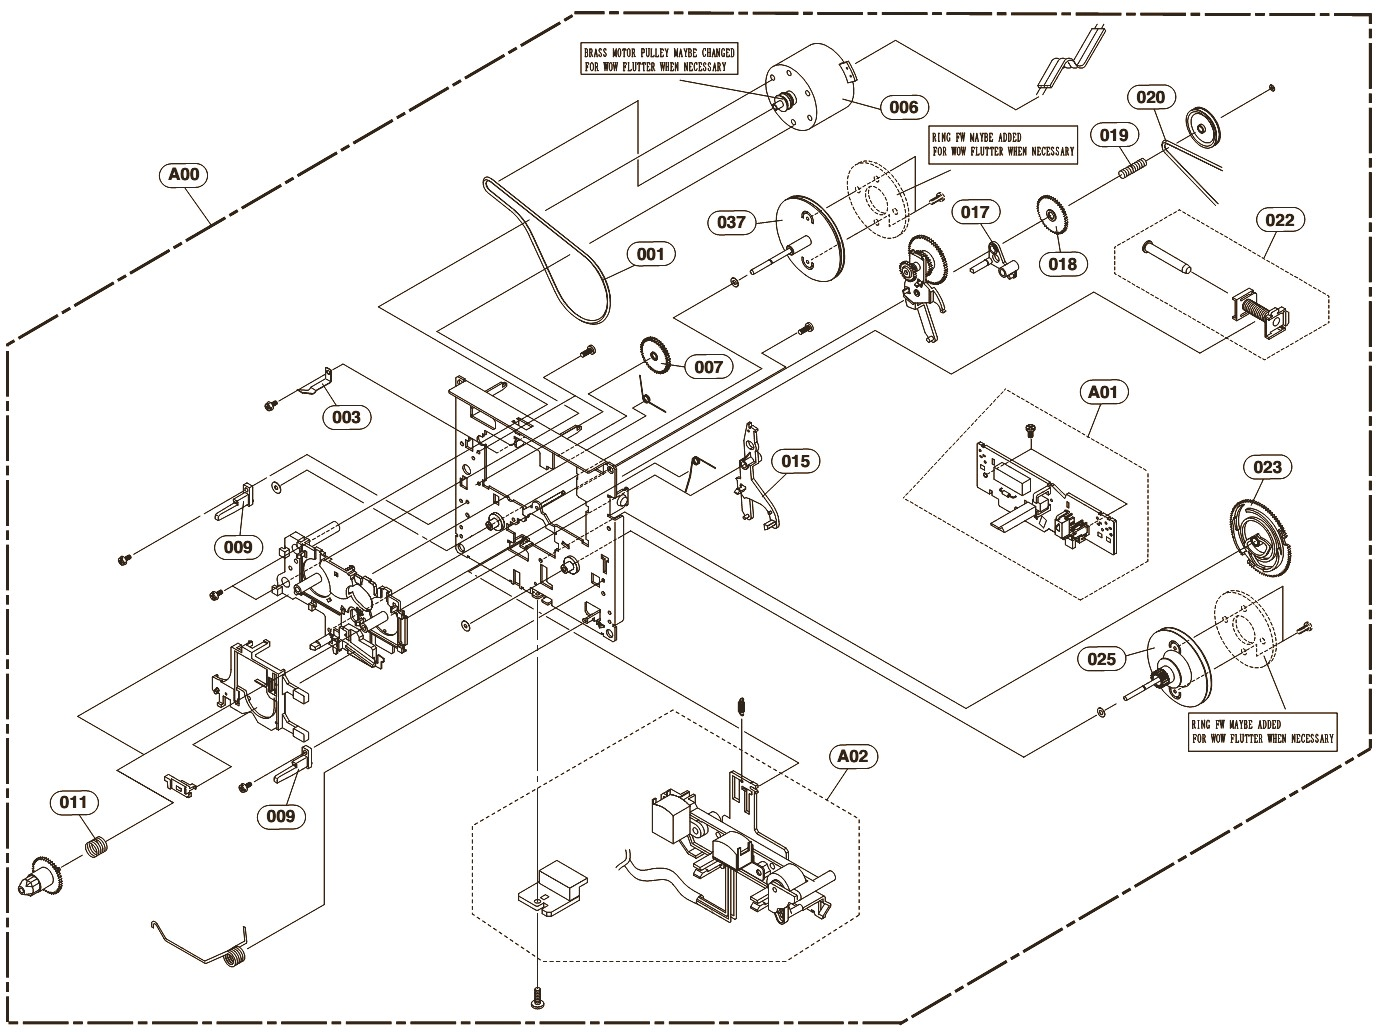 Lg Xc62 Lgxcs62f Mini Stereo System How To Reset Exploded View Troubleshooting Chart